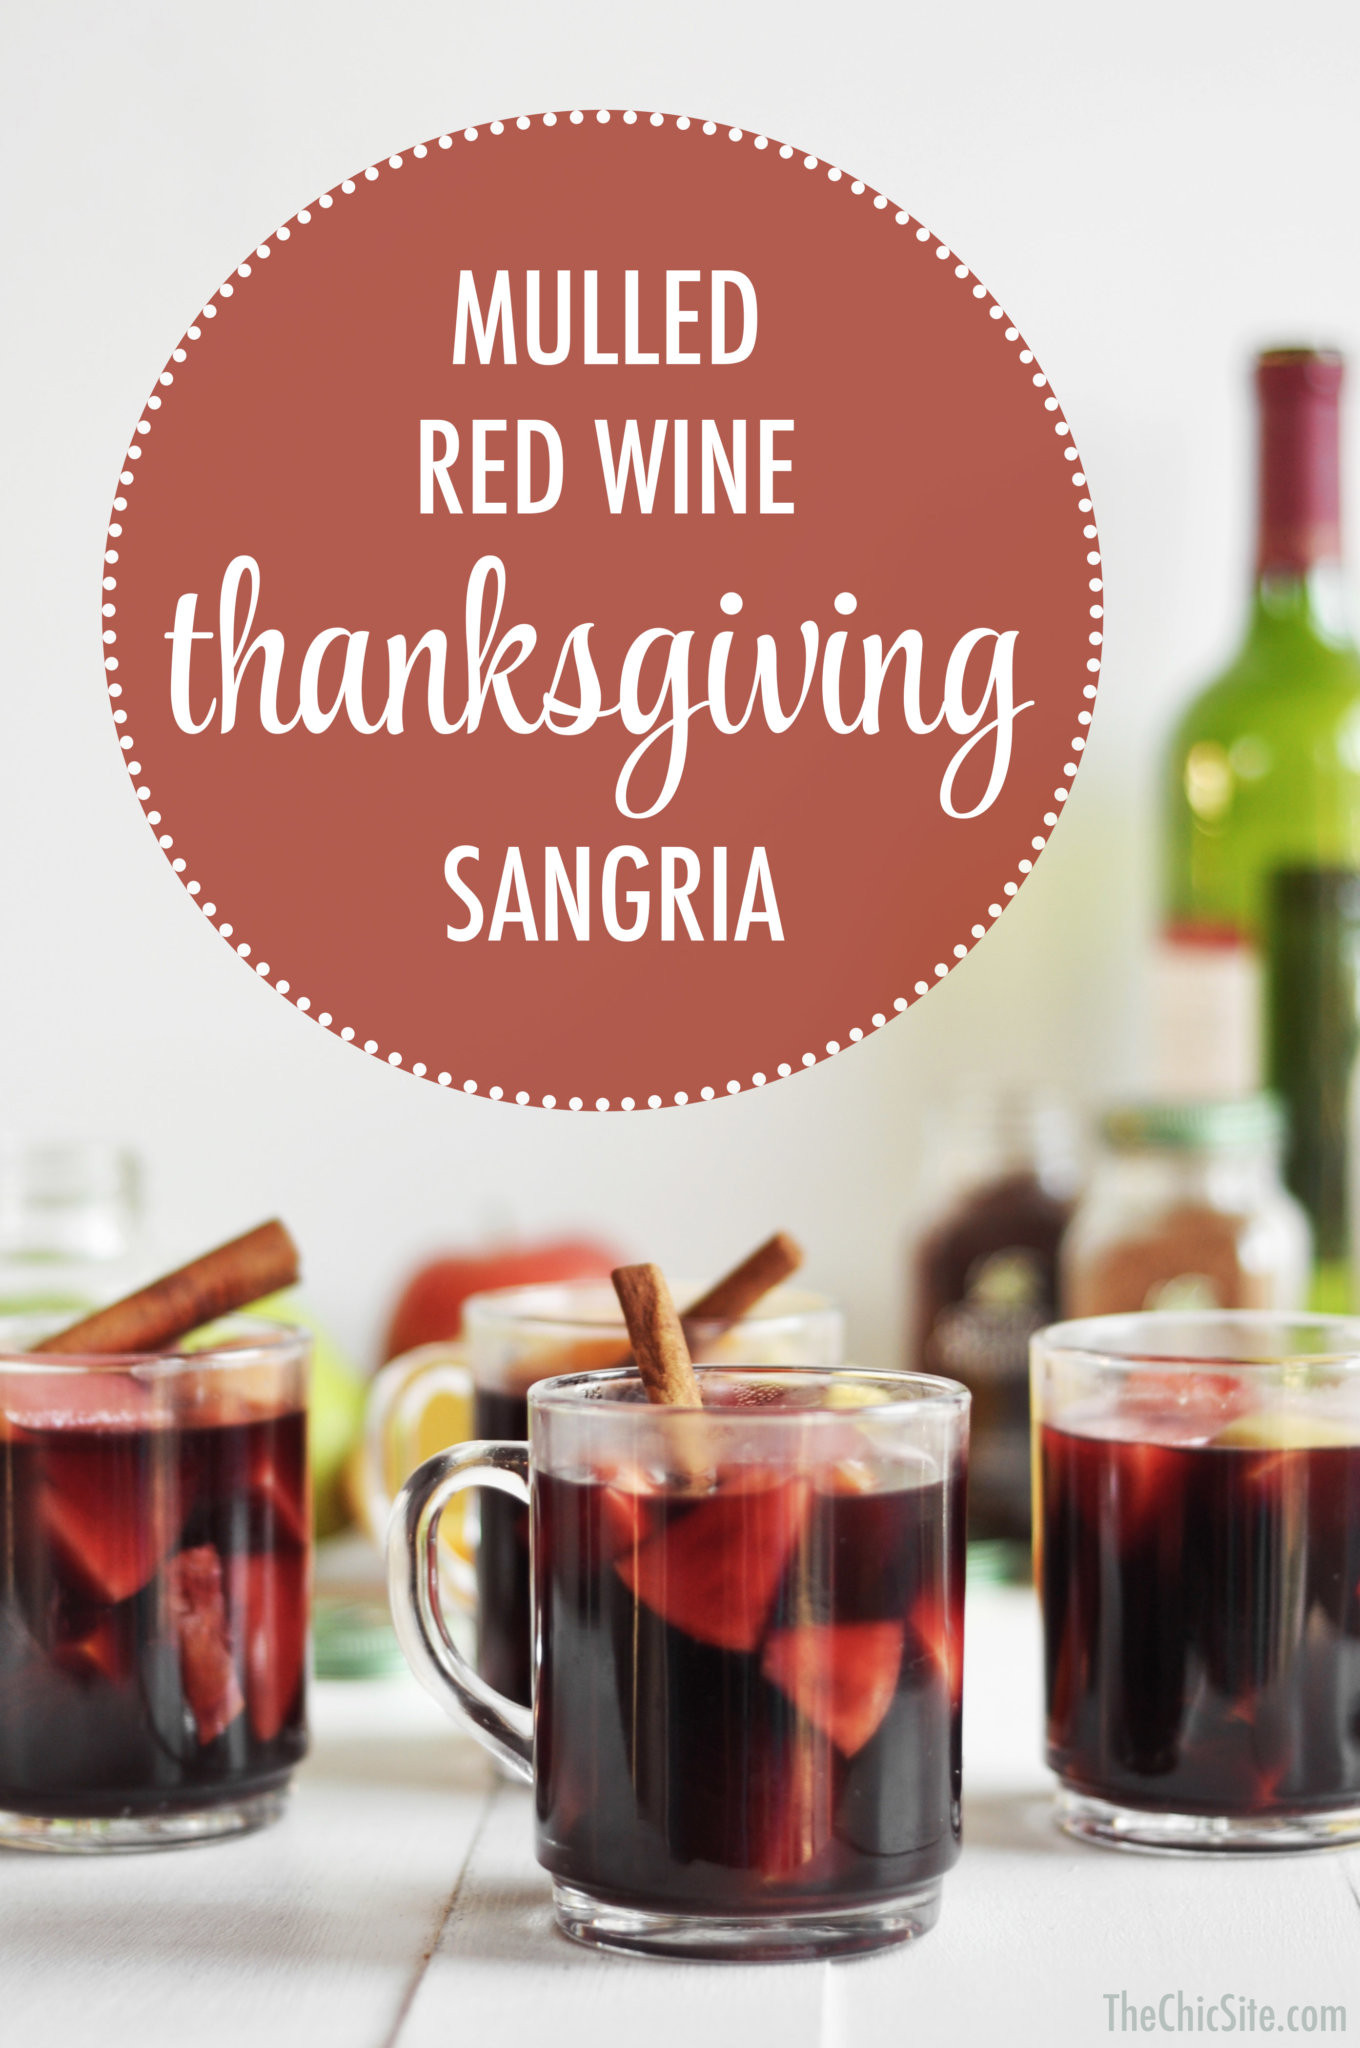 Thanksgiving Drinks Alcoholic  Thanksgiving Sangria The Chic Site